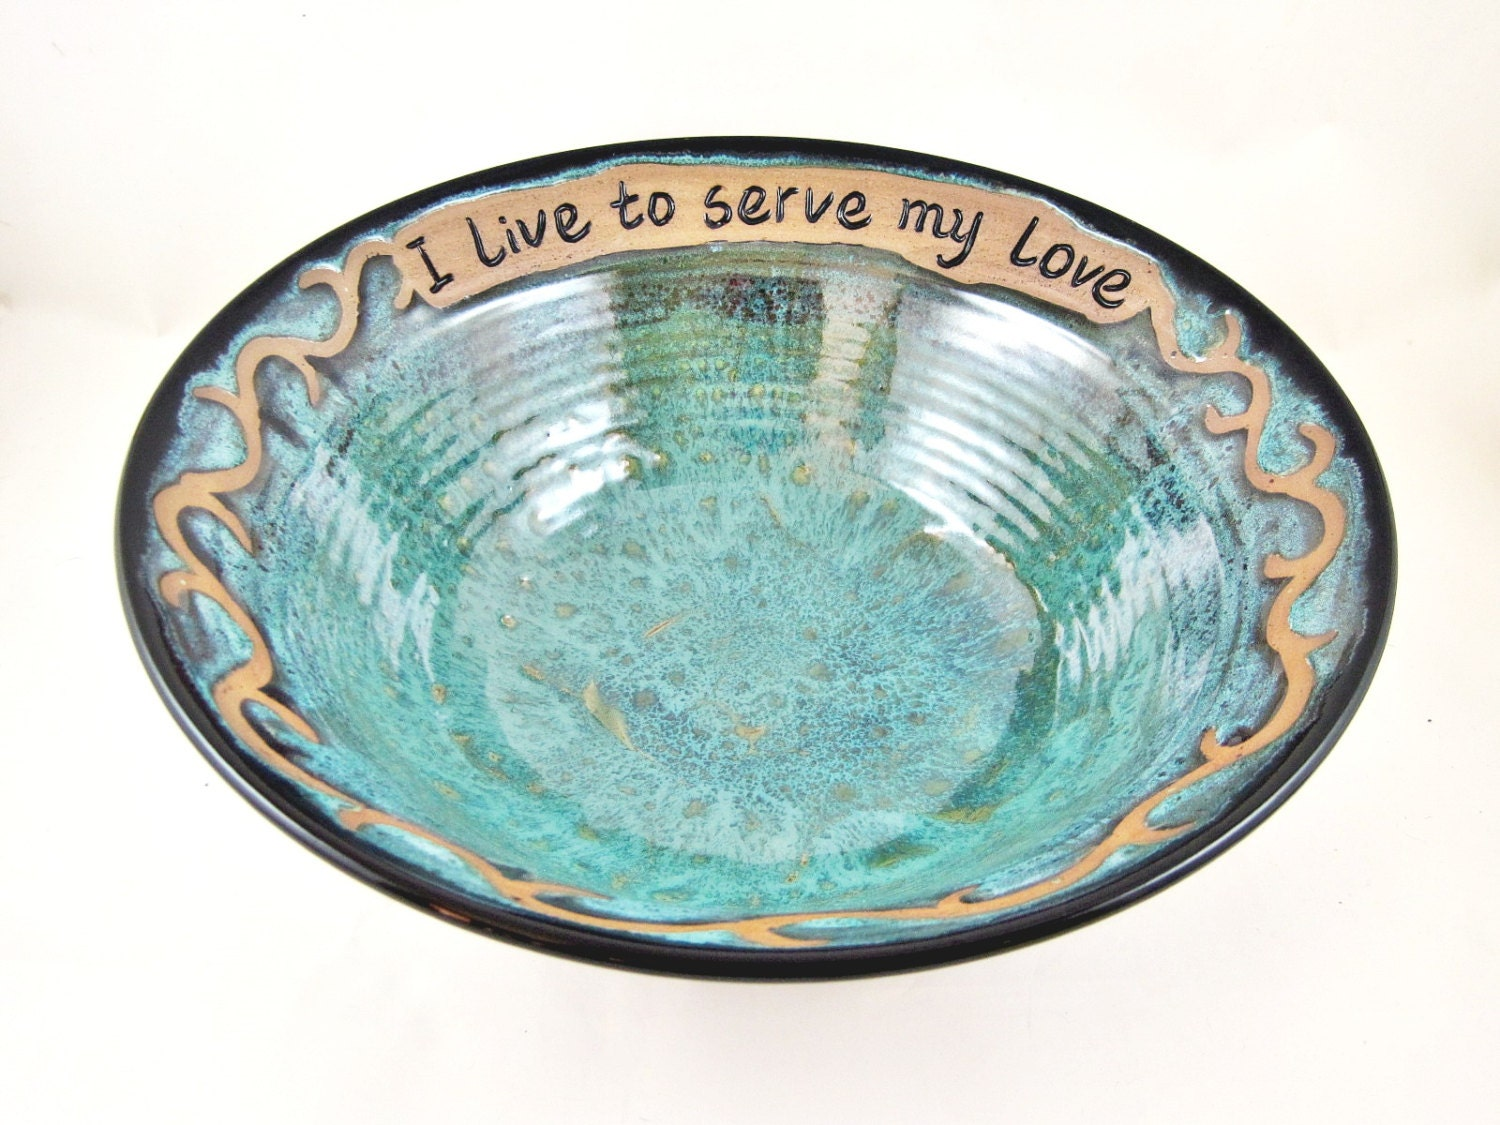 Pottery Wedding Gifts: Pottery Wedding Gift Handmade Pottery Bowl 9th Anniversary